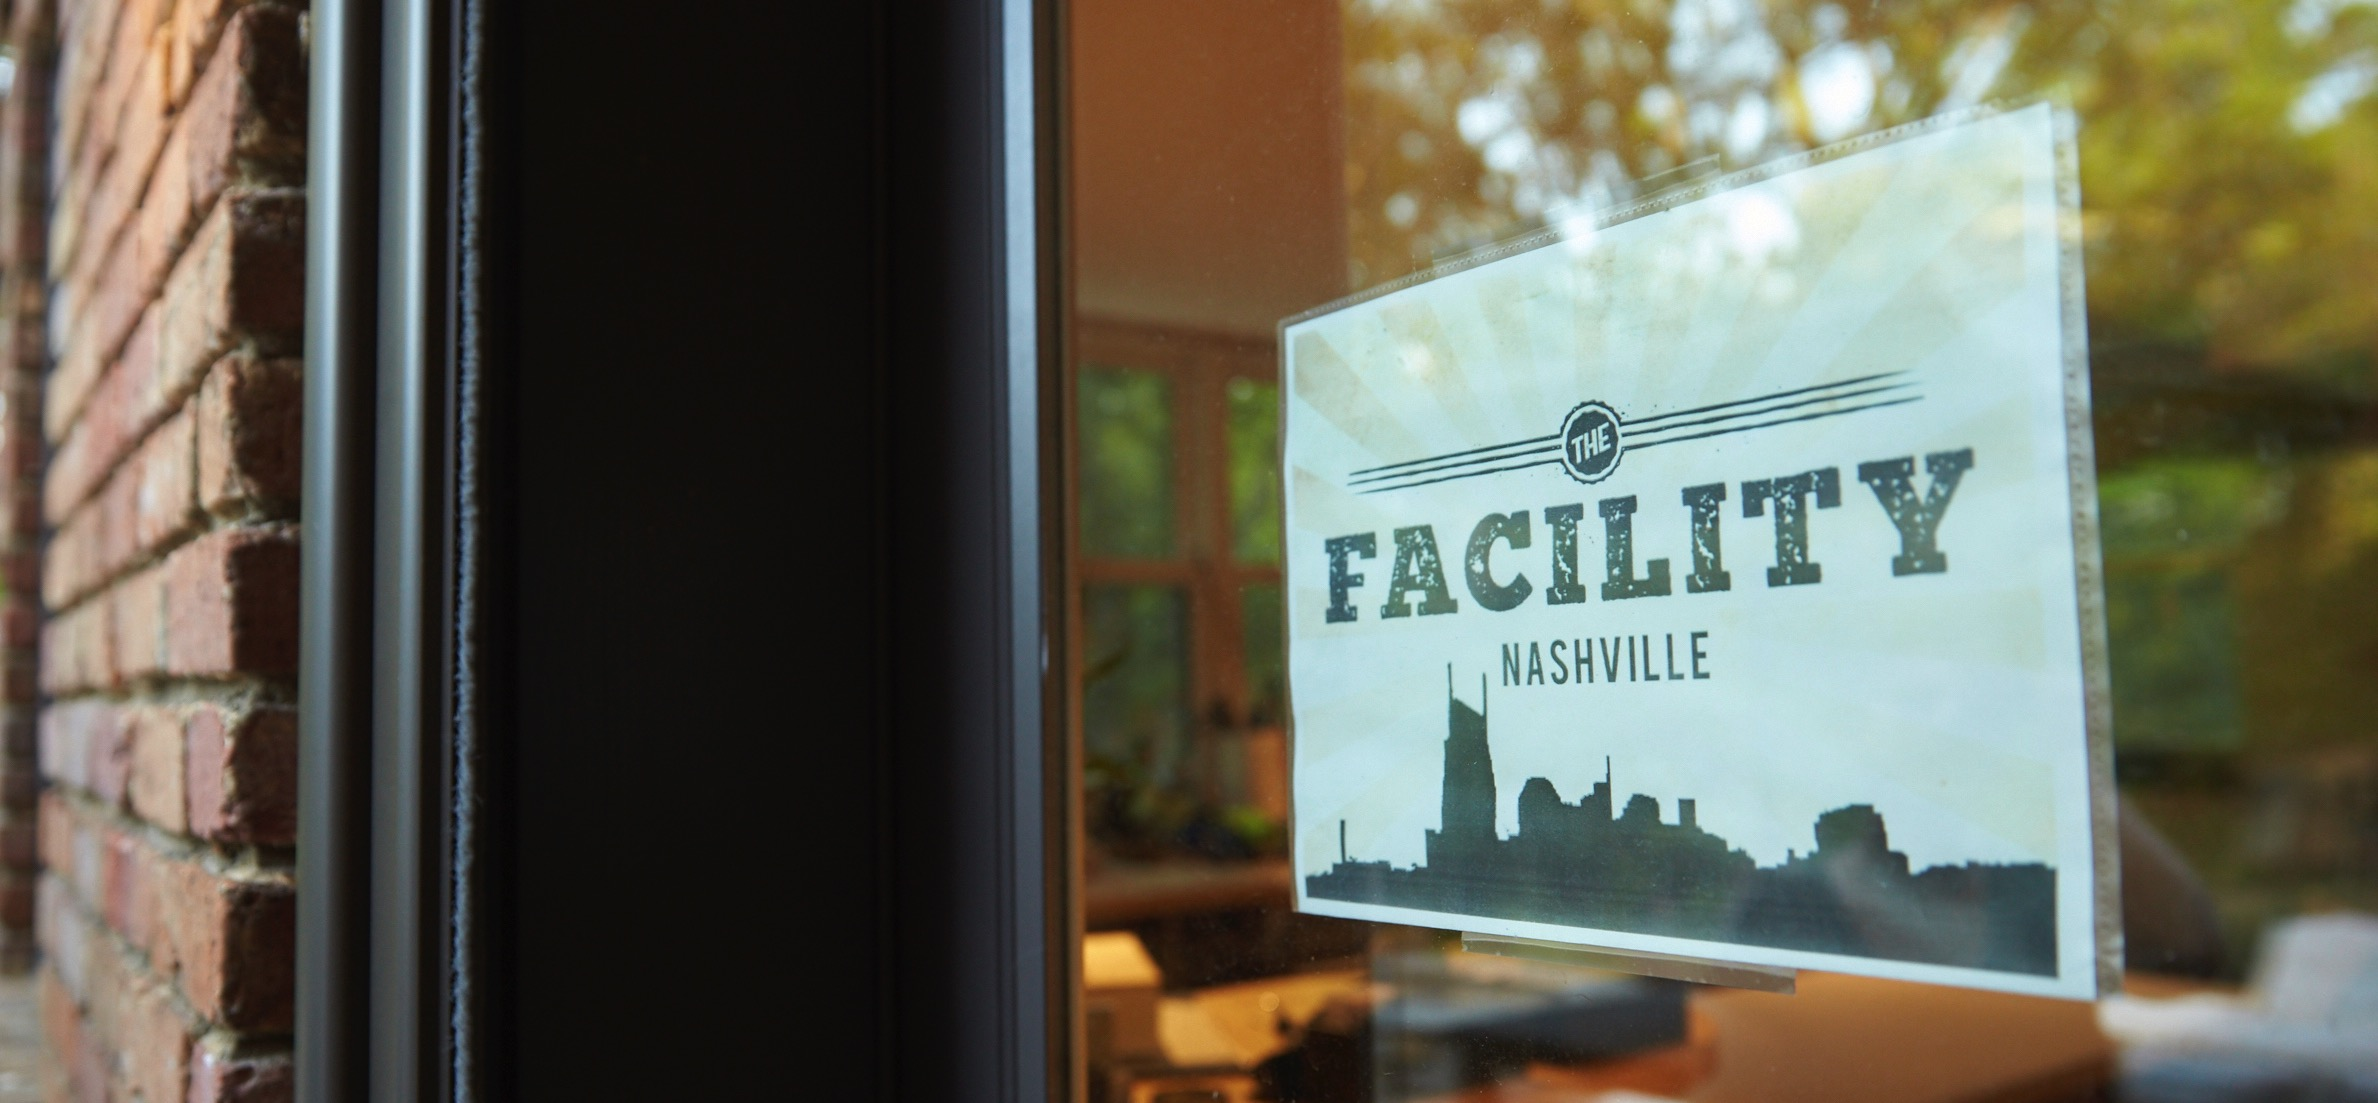 The facility nashville -